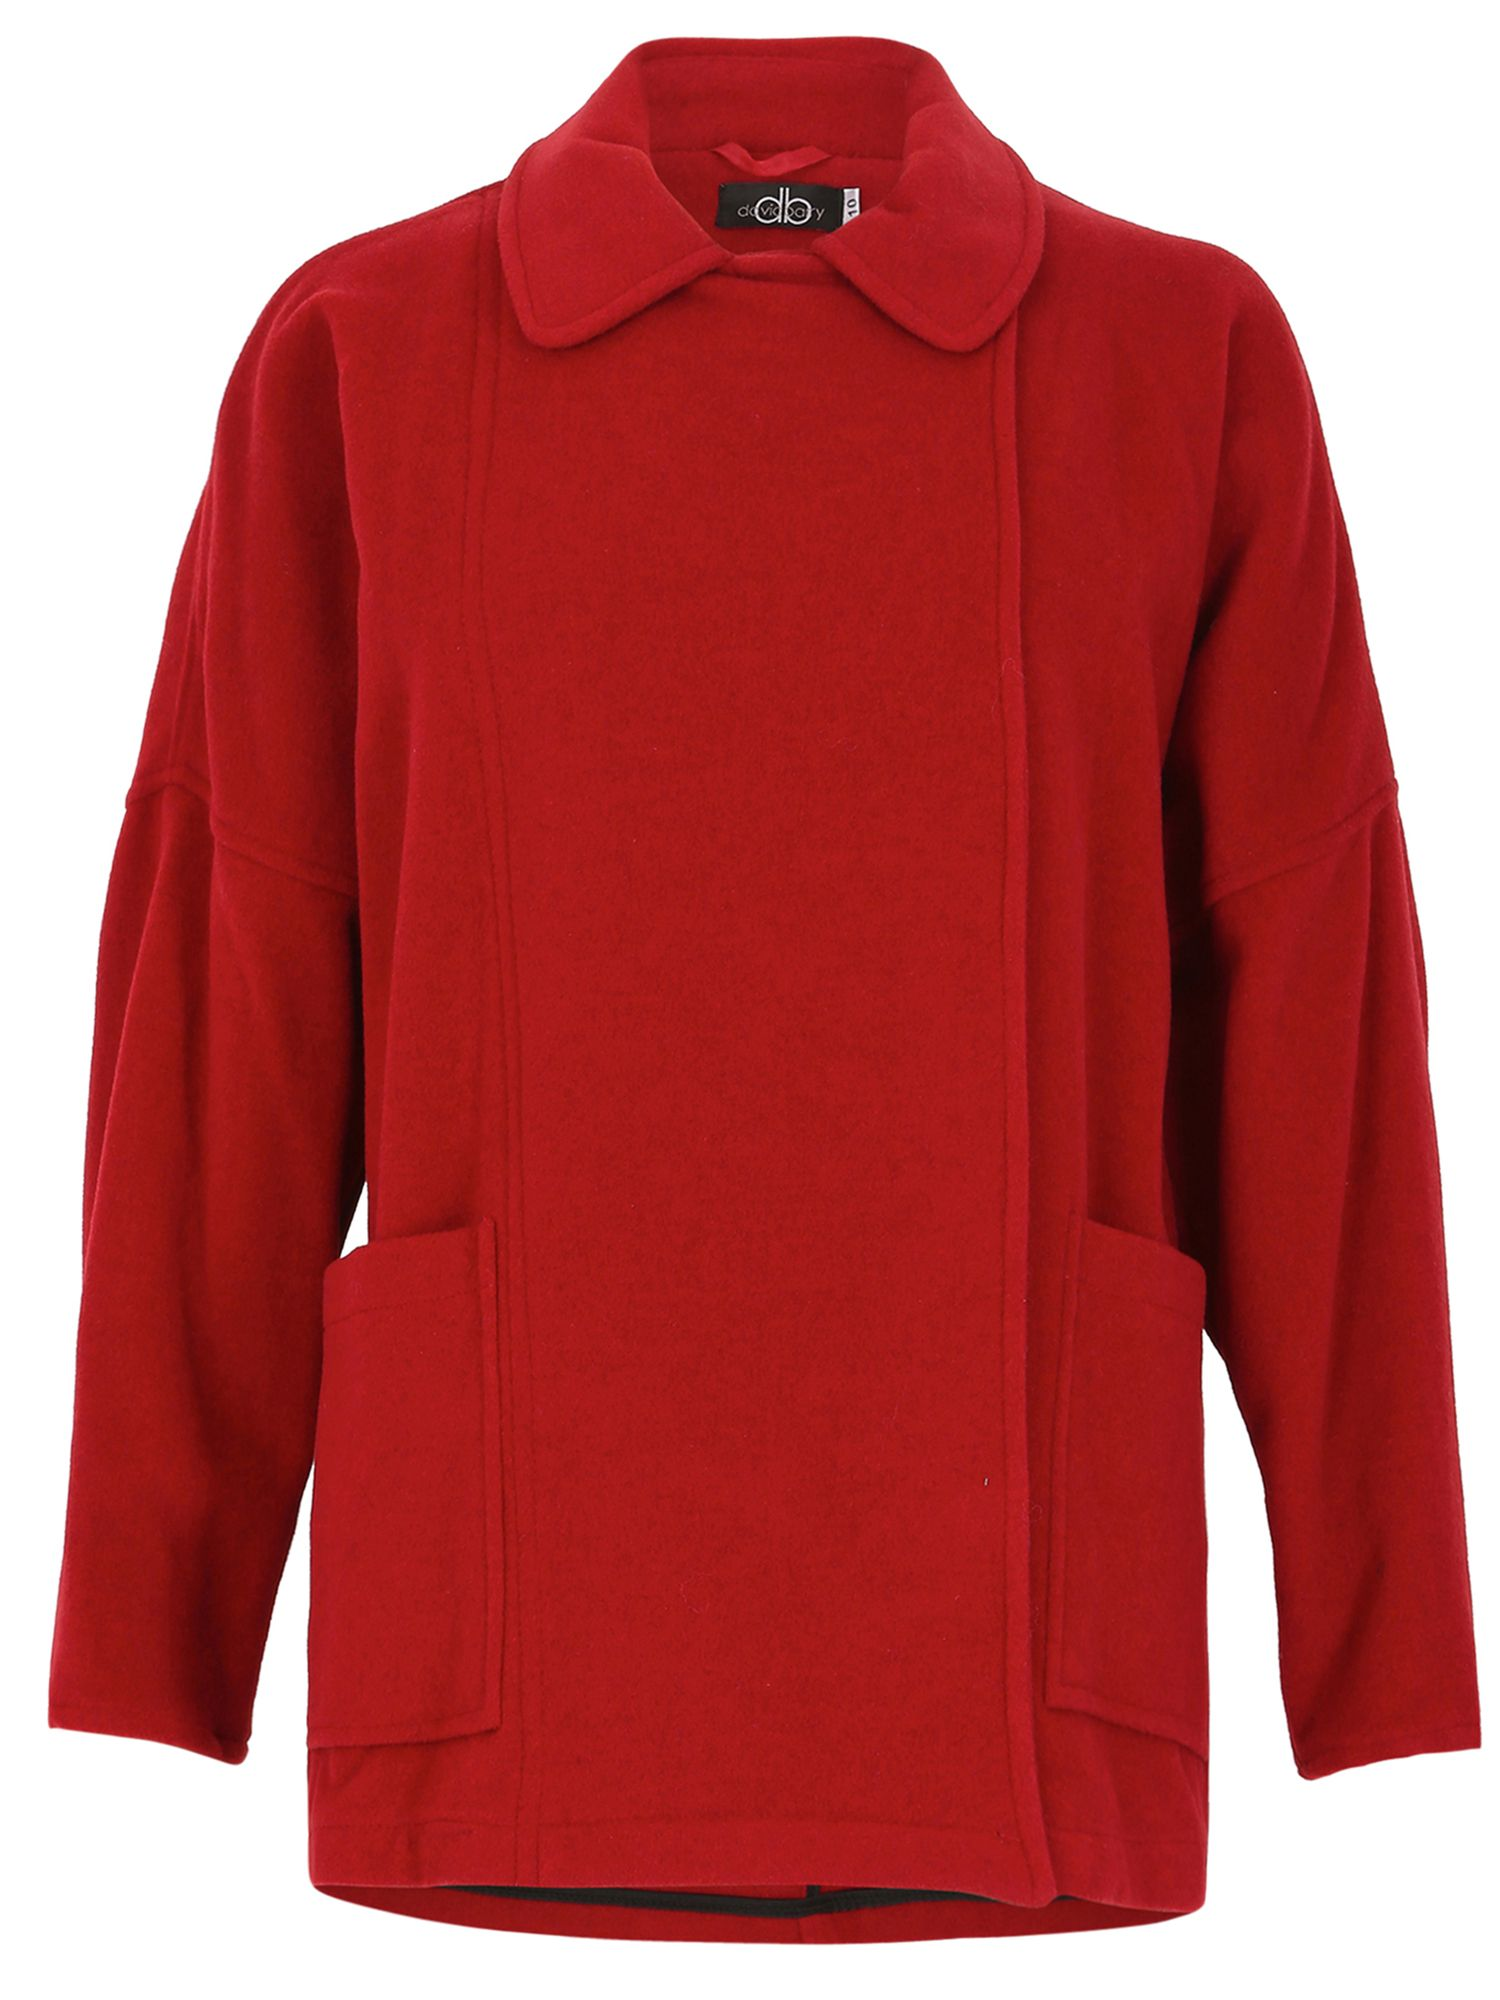 David Barry Unlined Wool Jacket Batwing, Red